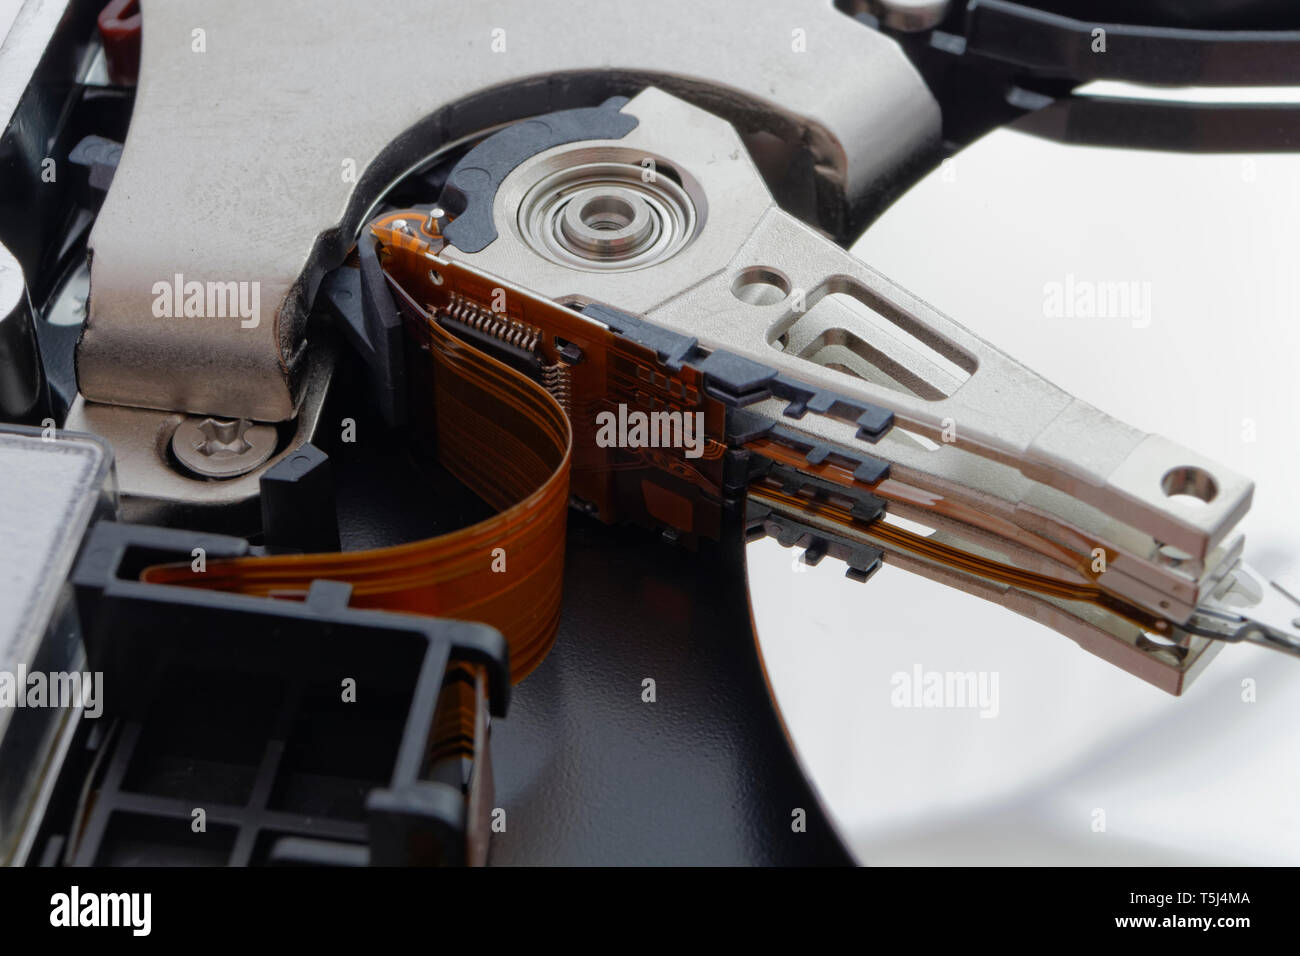 The internal detail of a computer hard drive hdd, inside view of data storage device Stock Photo